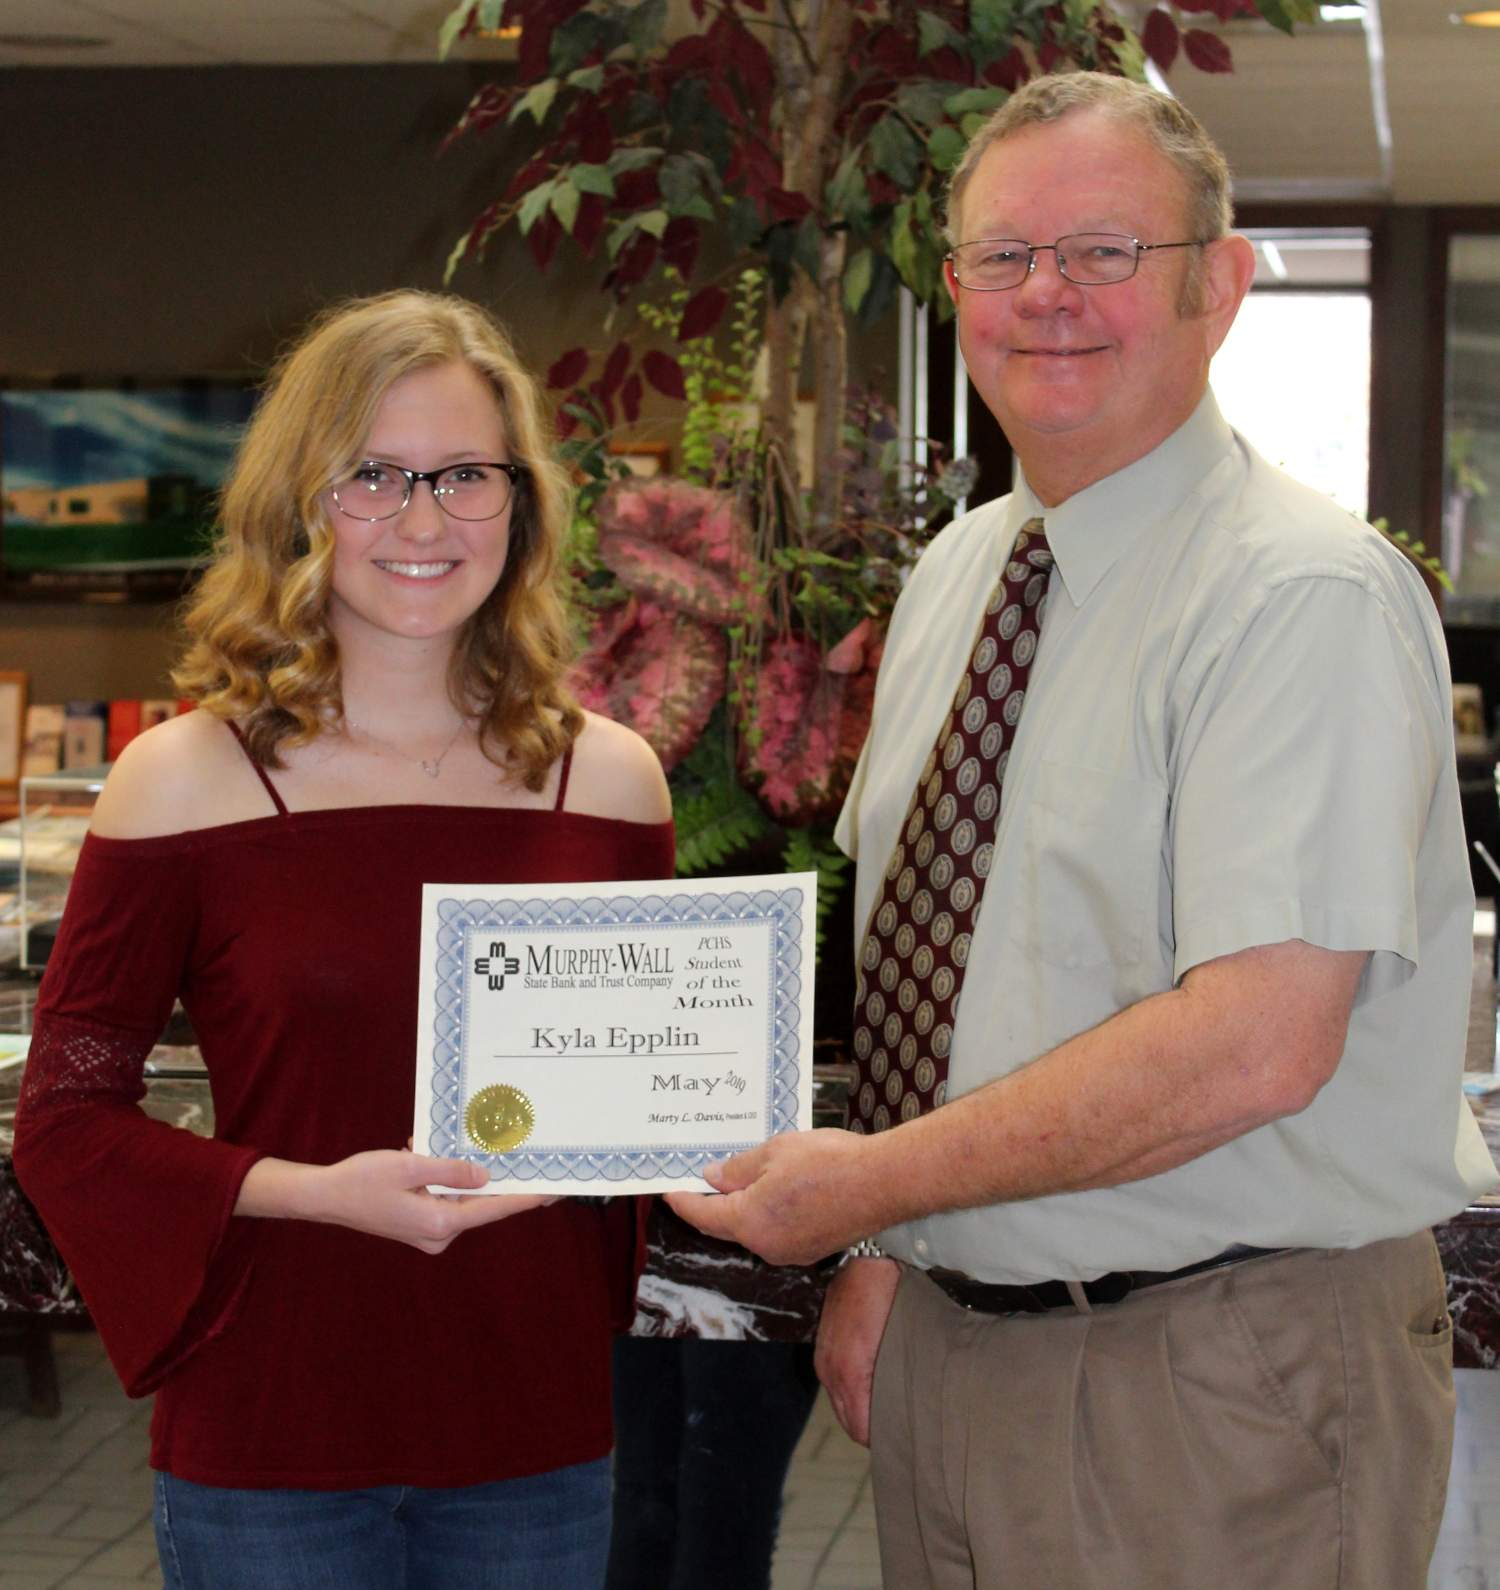 Kyla Epplin, Murphy-Wall State Bank's PCHS Student of the Month; receiving her certificate from Roger Hileman, EVP/Senior Mortgage Officer